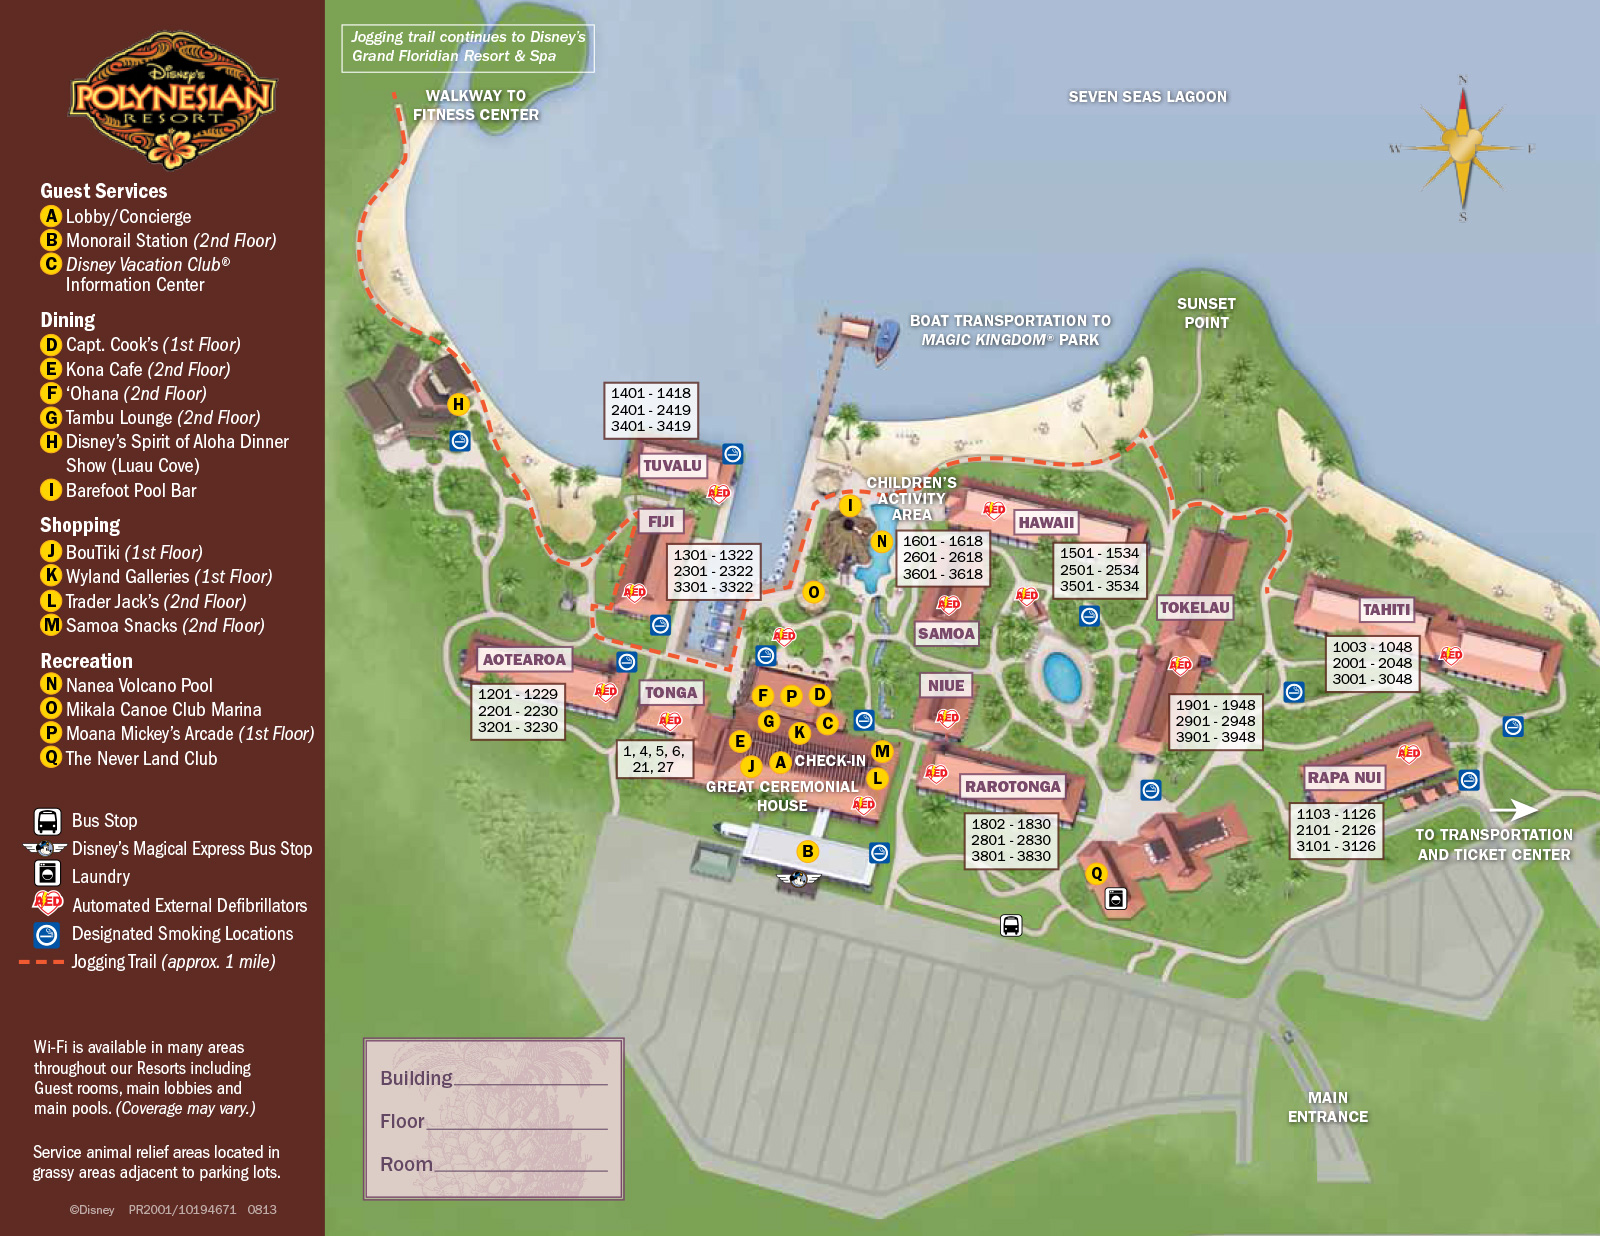 2013 Polynesian Resort guide map   Photo 1 of 1 2013 Polynesian Resort guide map